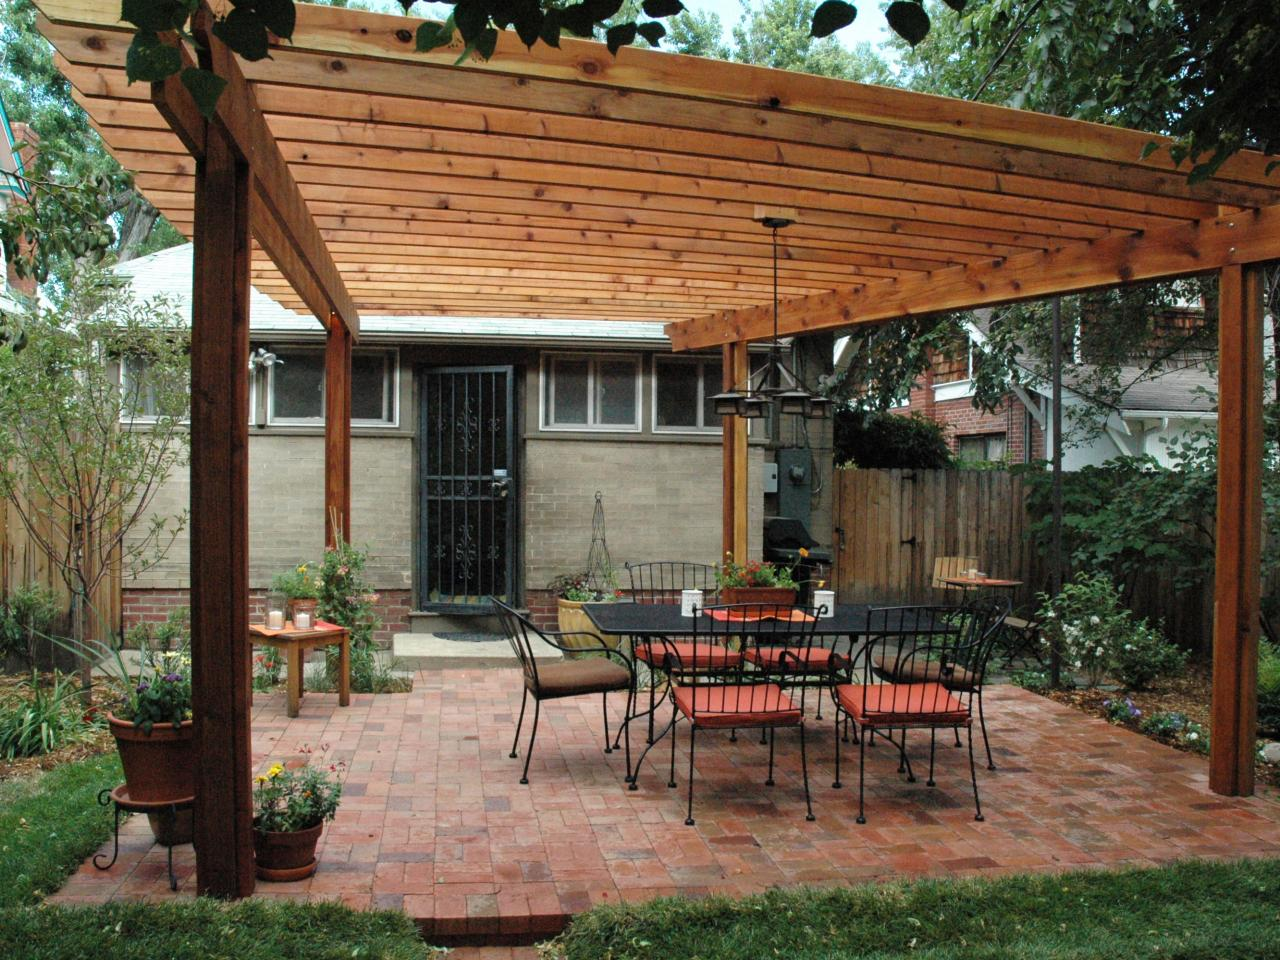 Arbor Installation-Frisco TX Professional Landscapers & Outdoor Living Designs-We offer Landscape Design, Outdoor Patios & Pergolas, Outdoor Living Spaces, Stonescapes, Residential & Commercial Landscaping, Irrigation Installation & Repairs, Drainage Systems, Landscape Lighting, Outdoor Living Spaces, Tree Service, Lawn Service, and more.